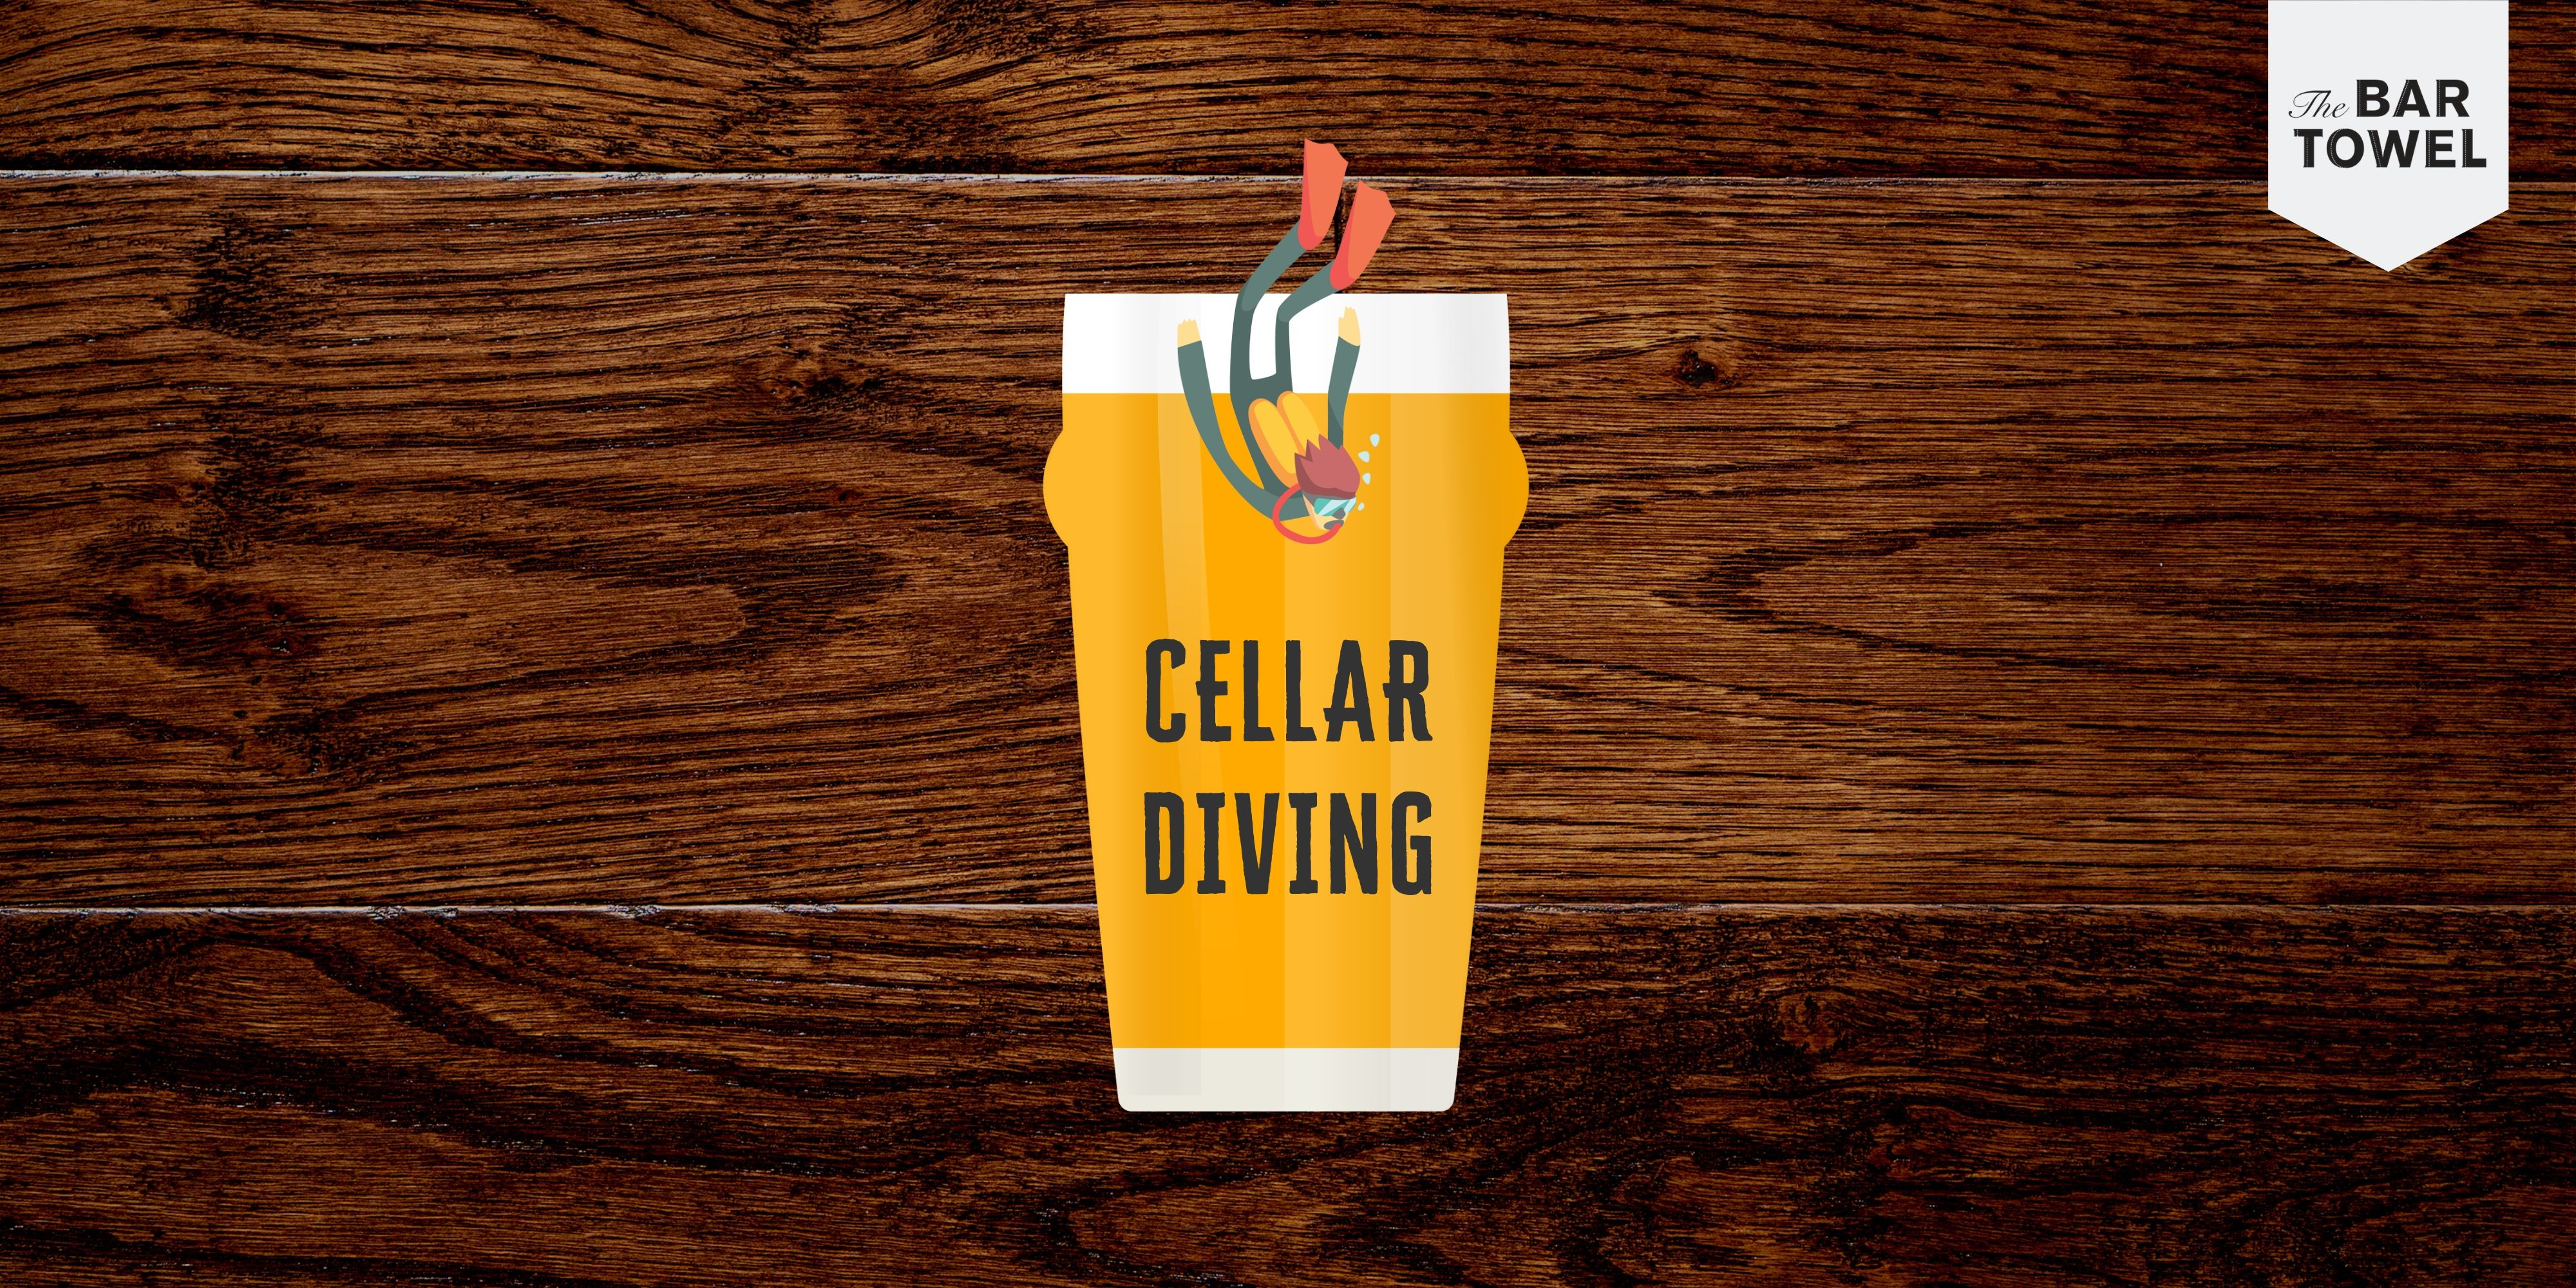 The Bar Towel Launches Cellar Diving